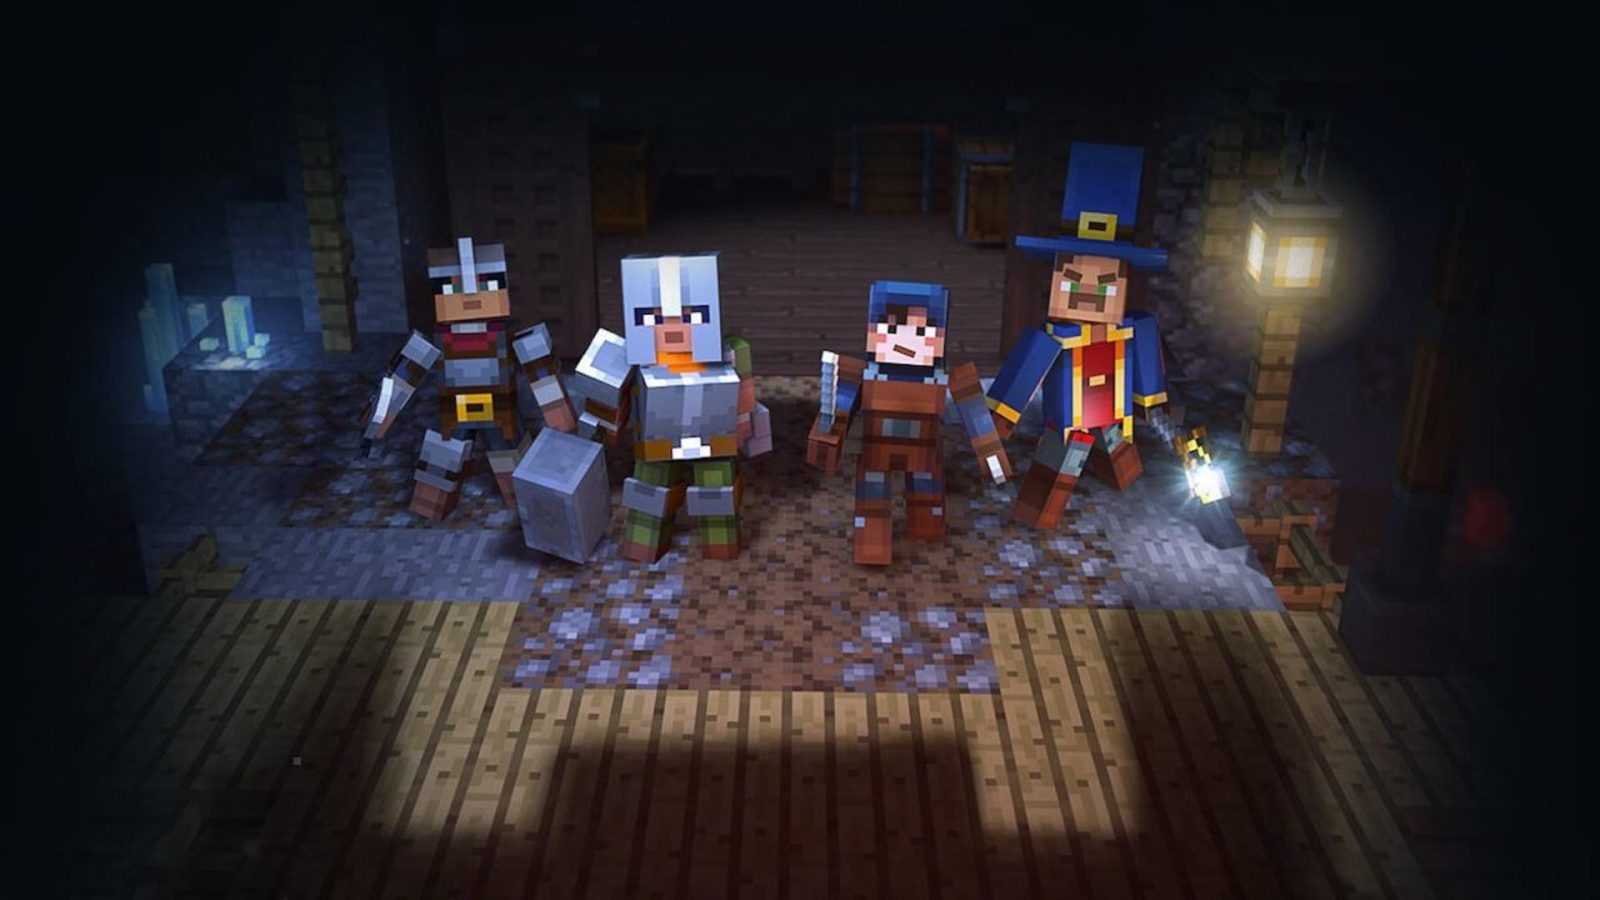 Minecraft Black Friday Deals – Games, Toys, Playsets, and More